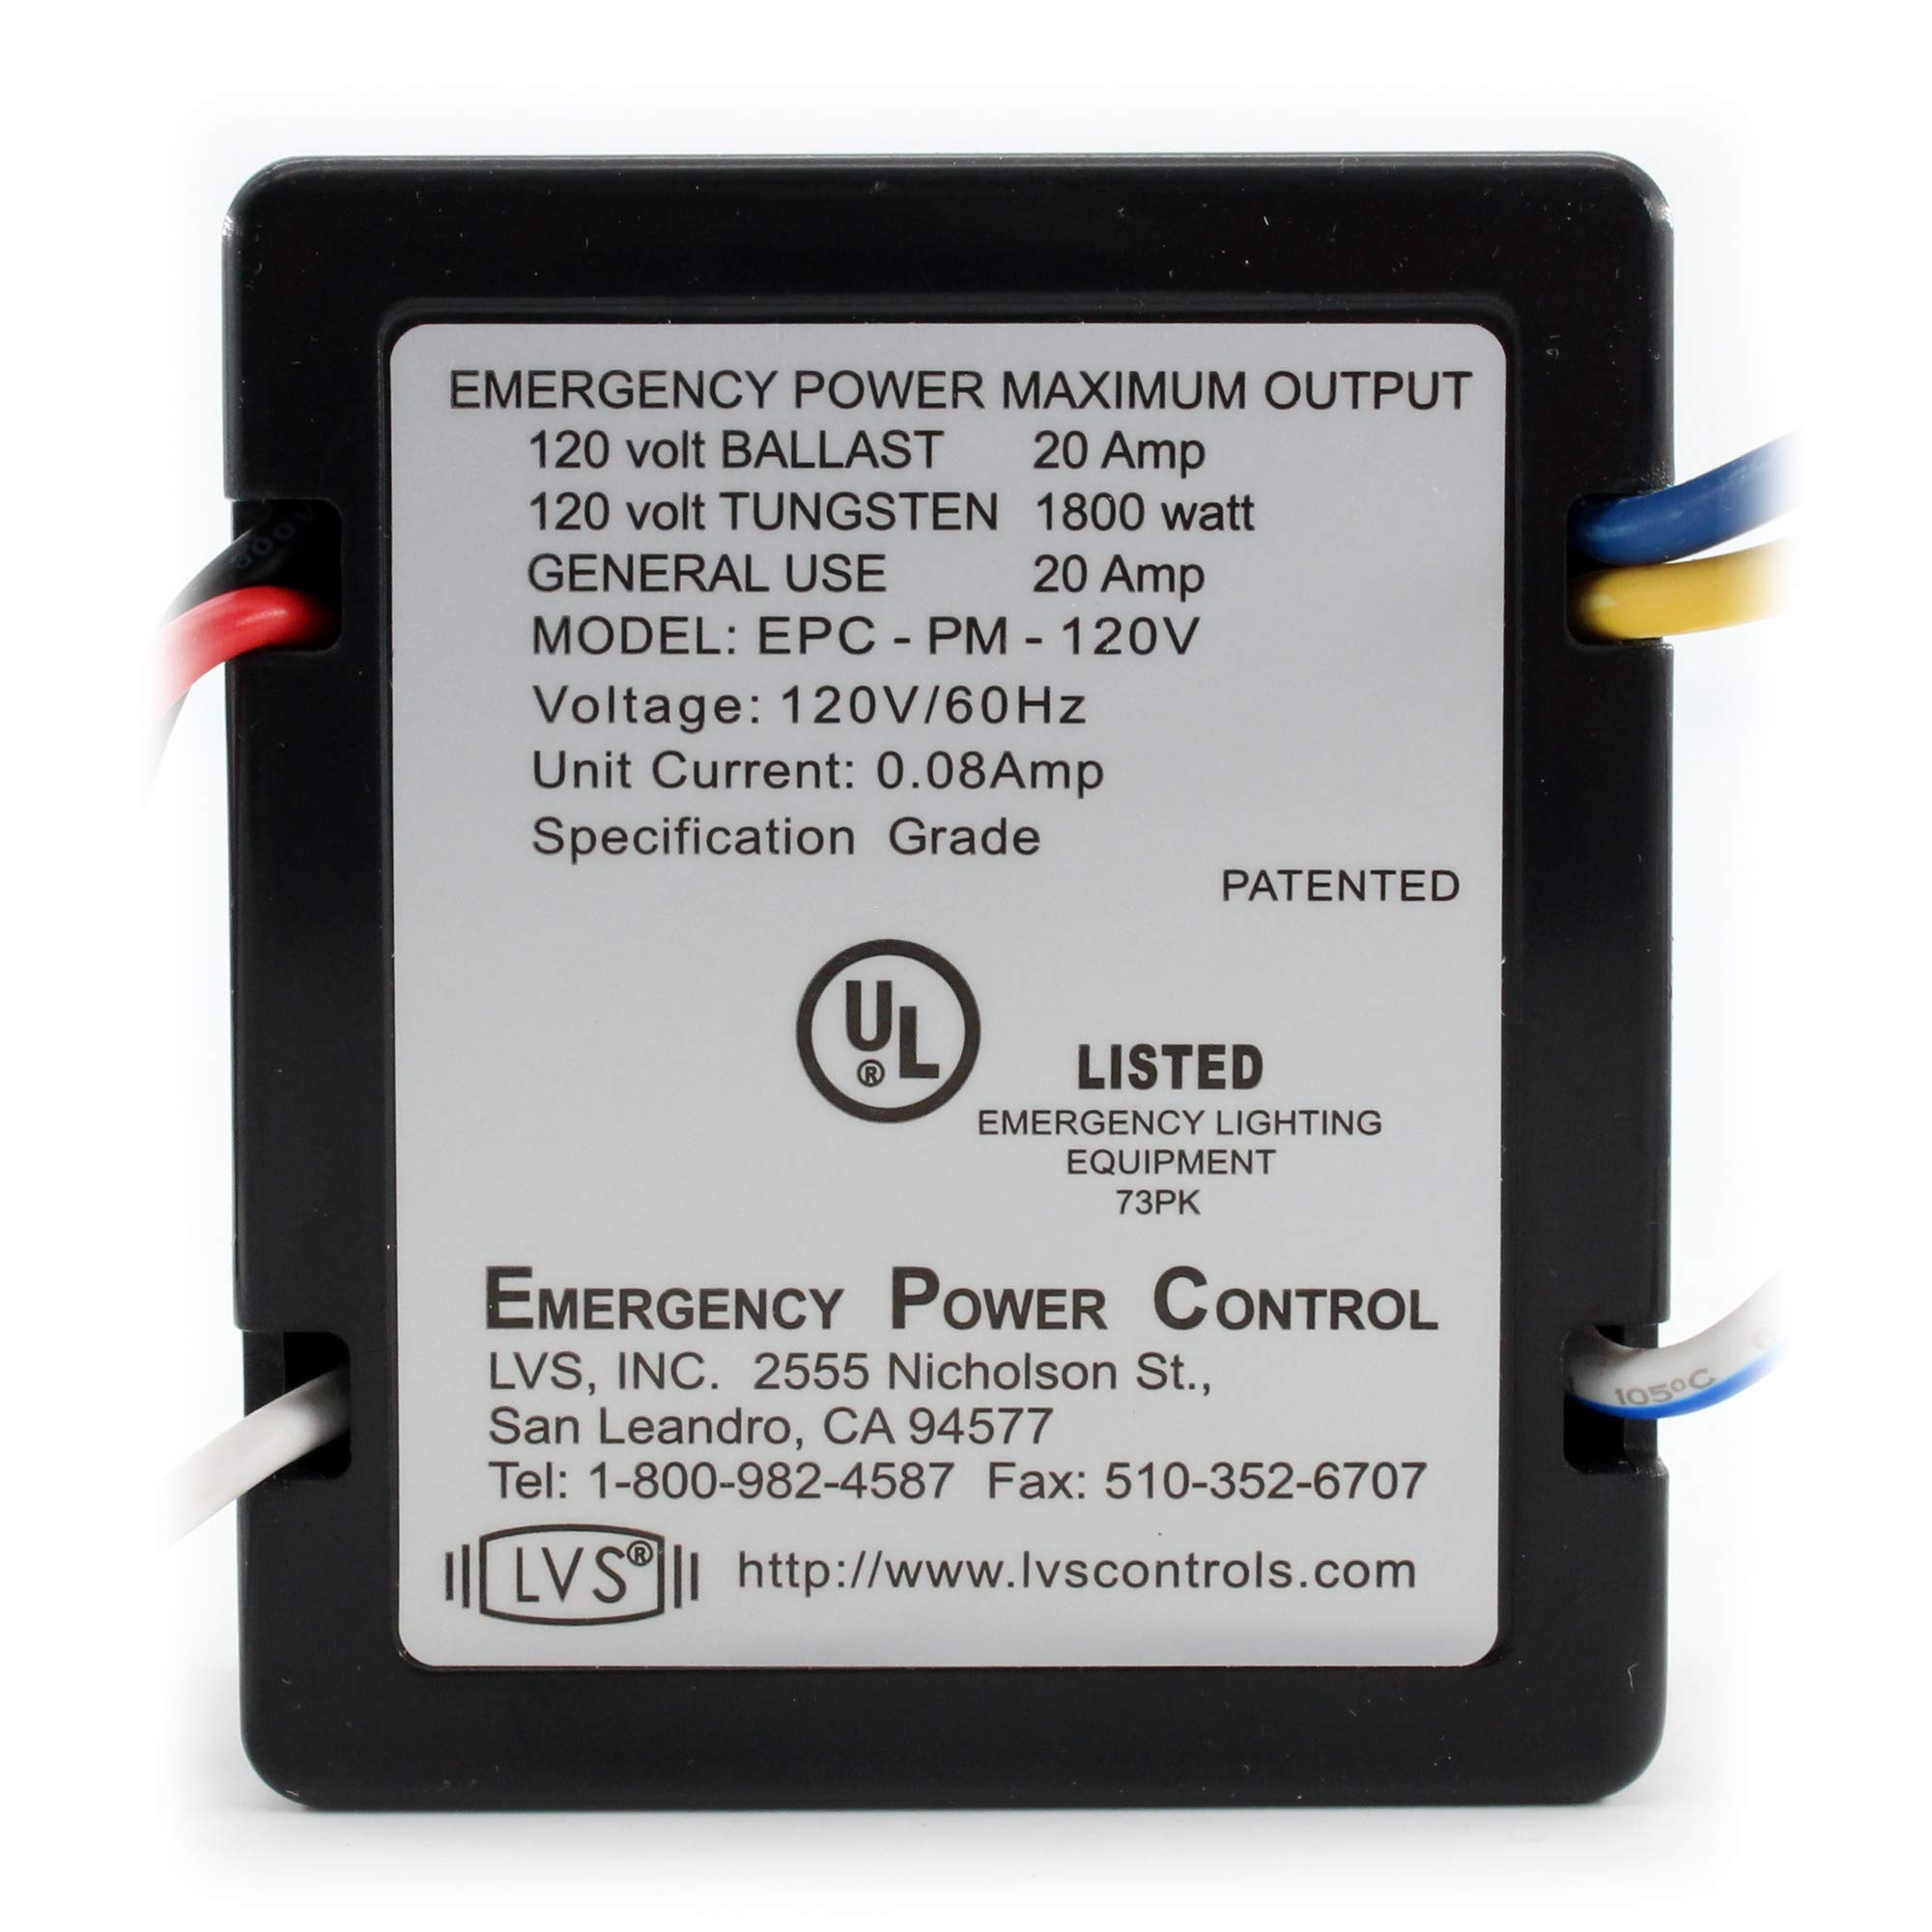 LVS Controls HEPC-120V Emergency Power Control, 120V, 20A, 60Hz